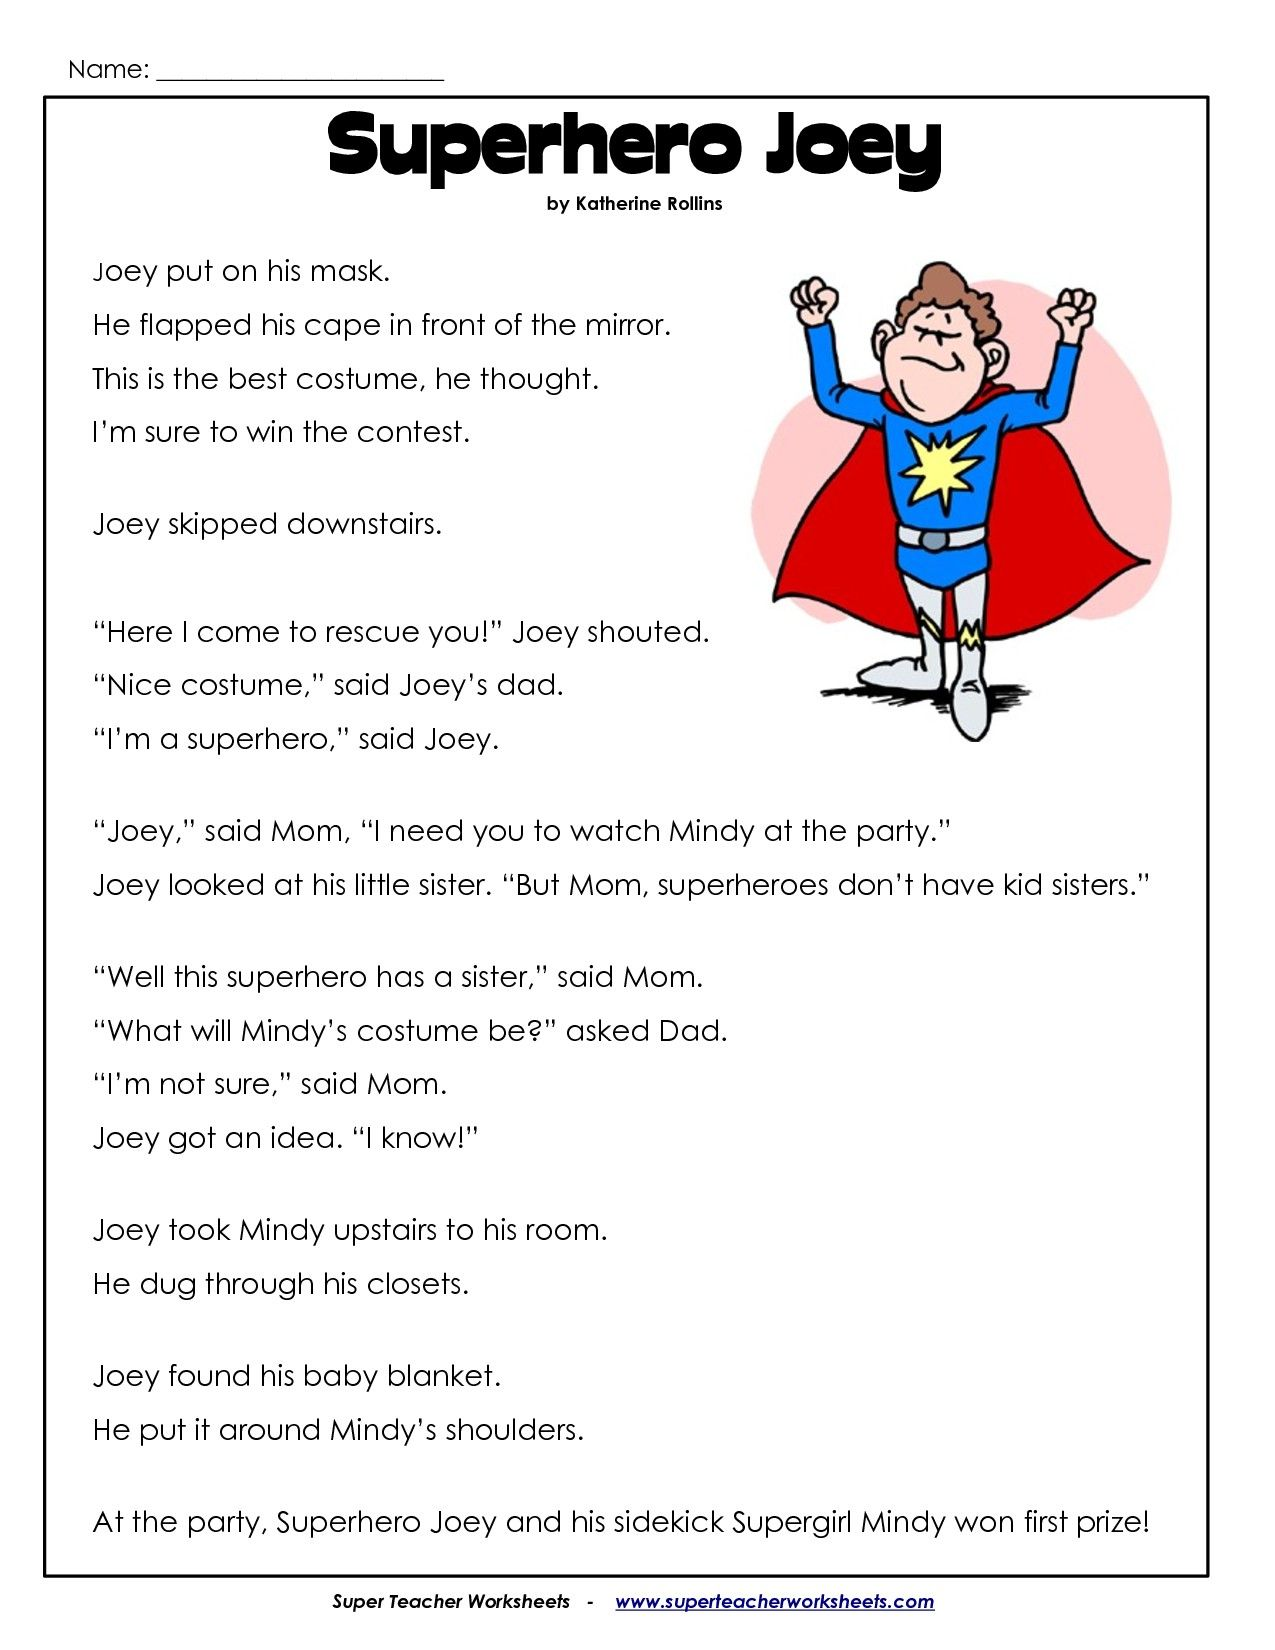 Worksheet Second Grade Reading Comprehension Stories the cowboy second grade reading comprehension test use 2nd worksheets pdf